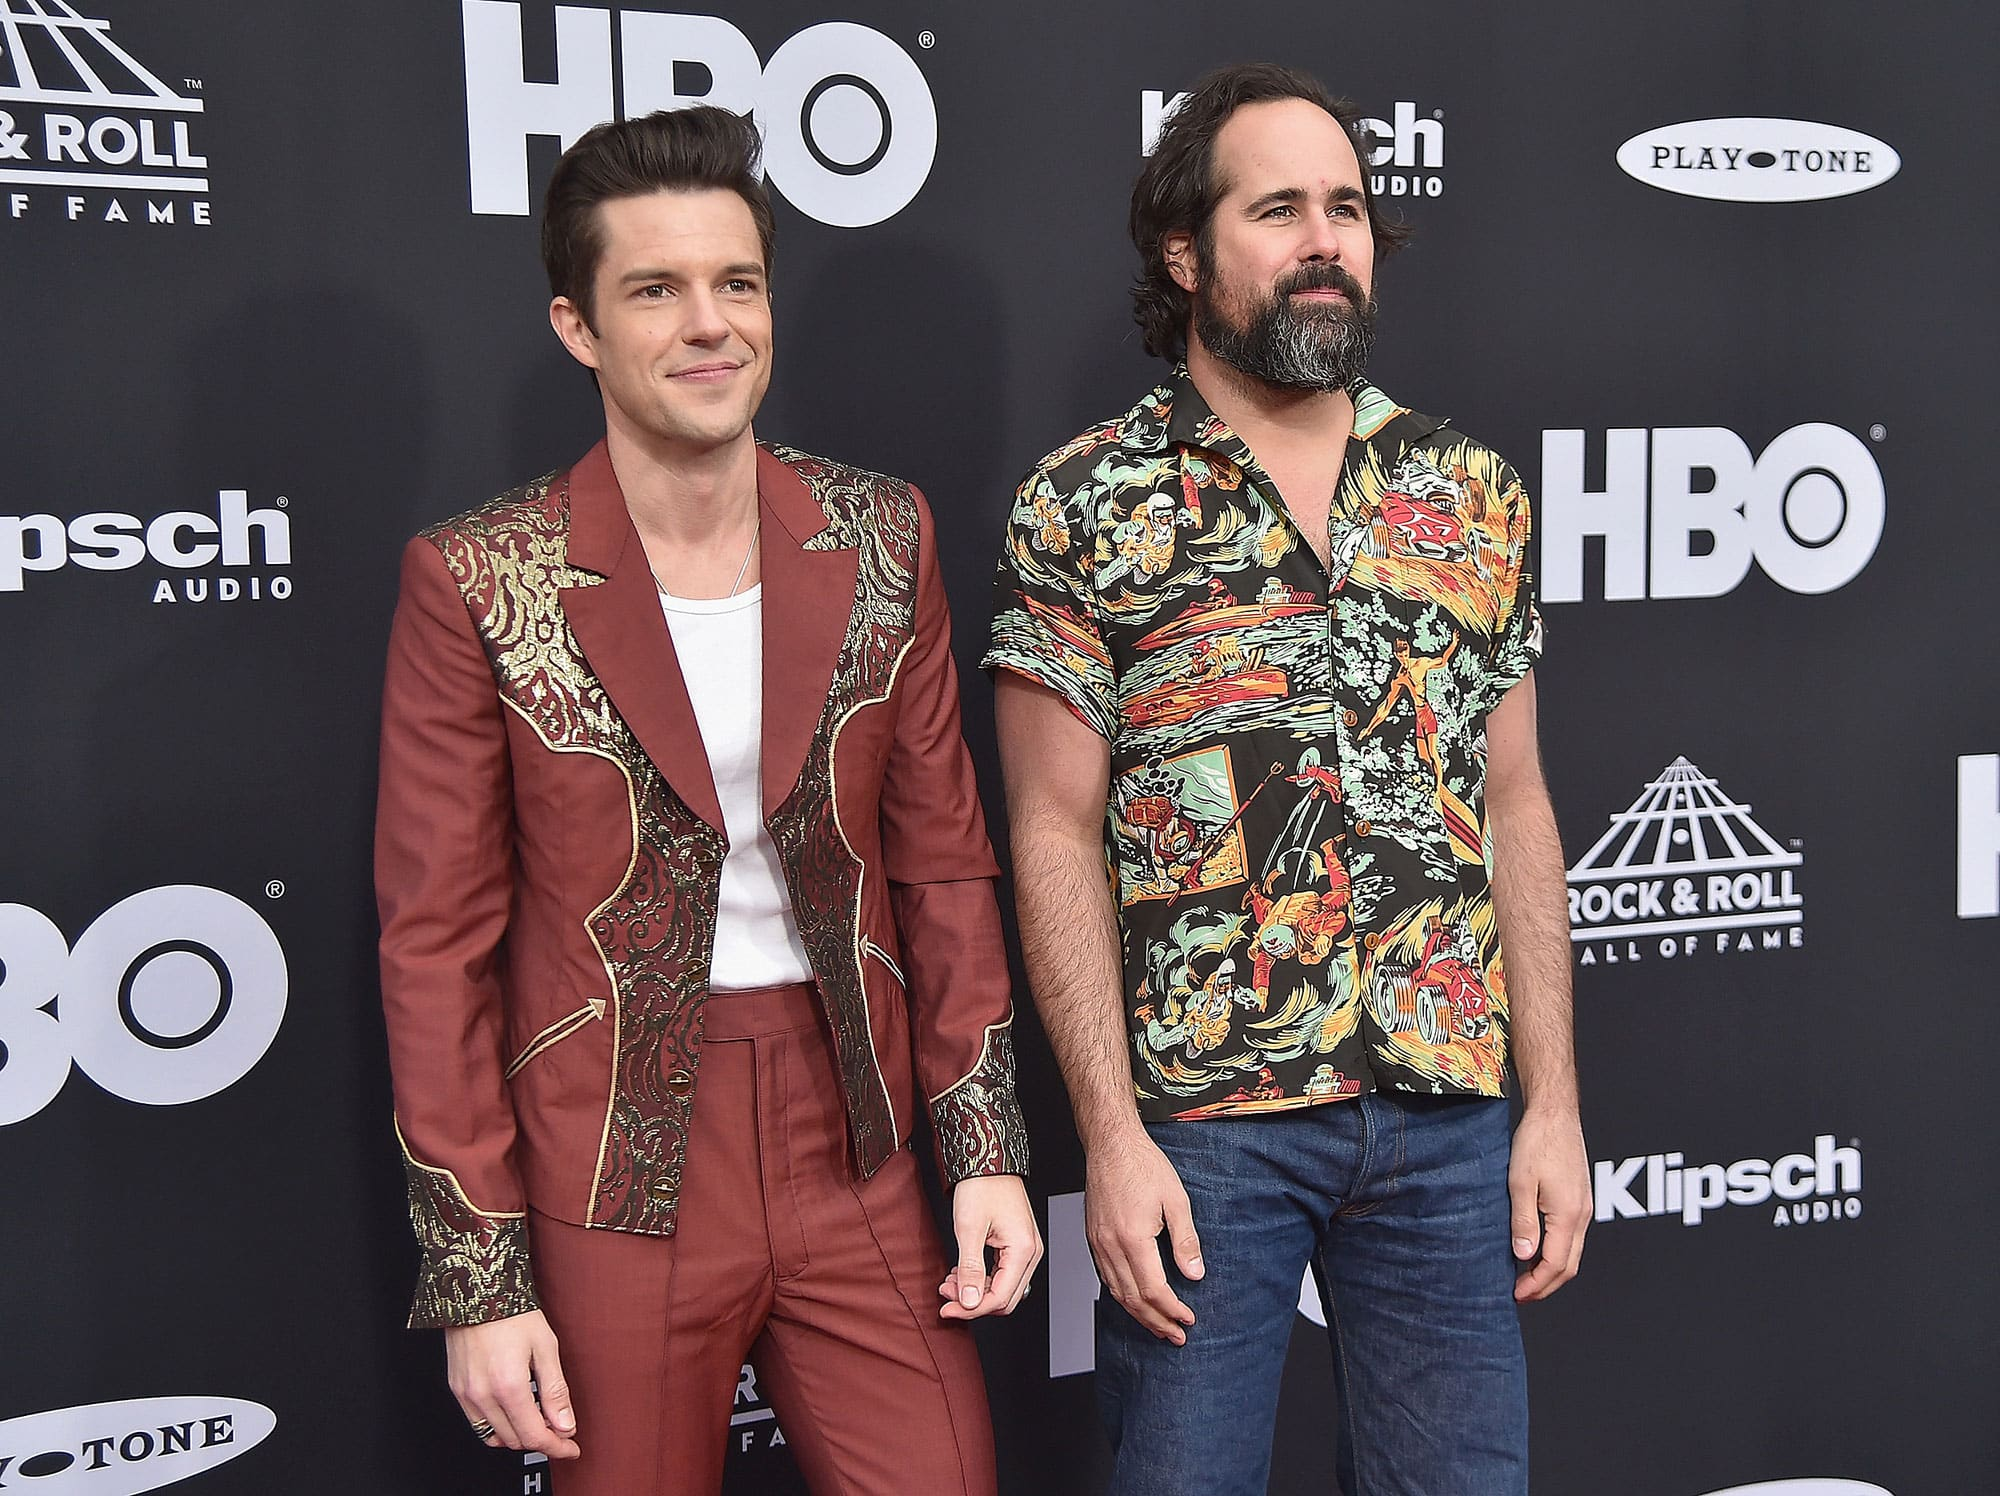 I Killers omaggiano Tom Petty alla Rock and Roll Hall of Fame Ceremony